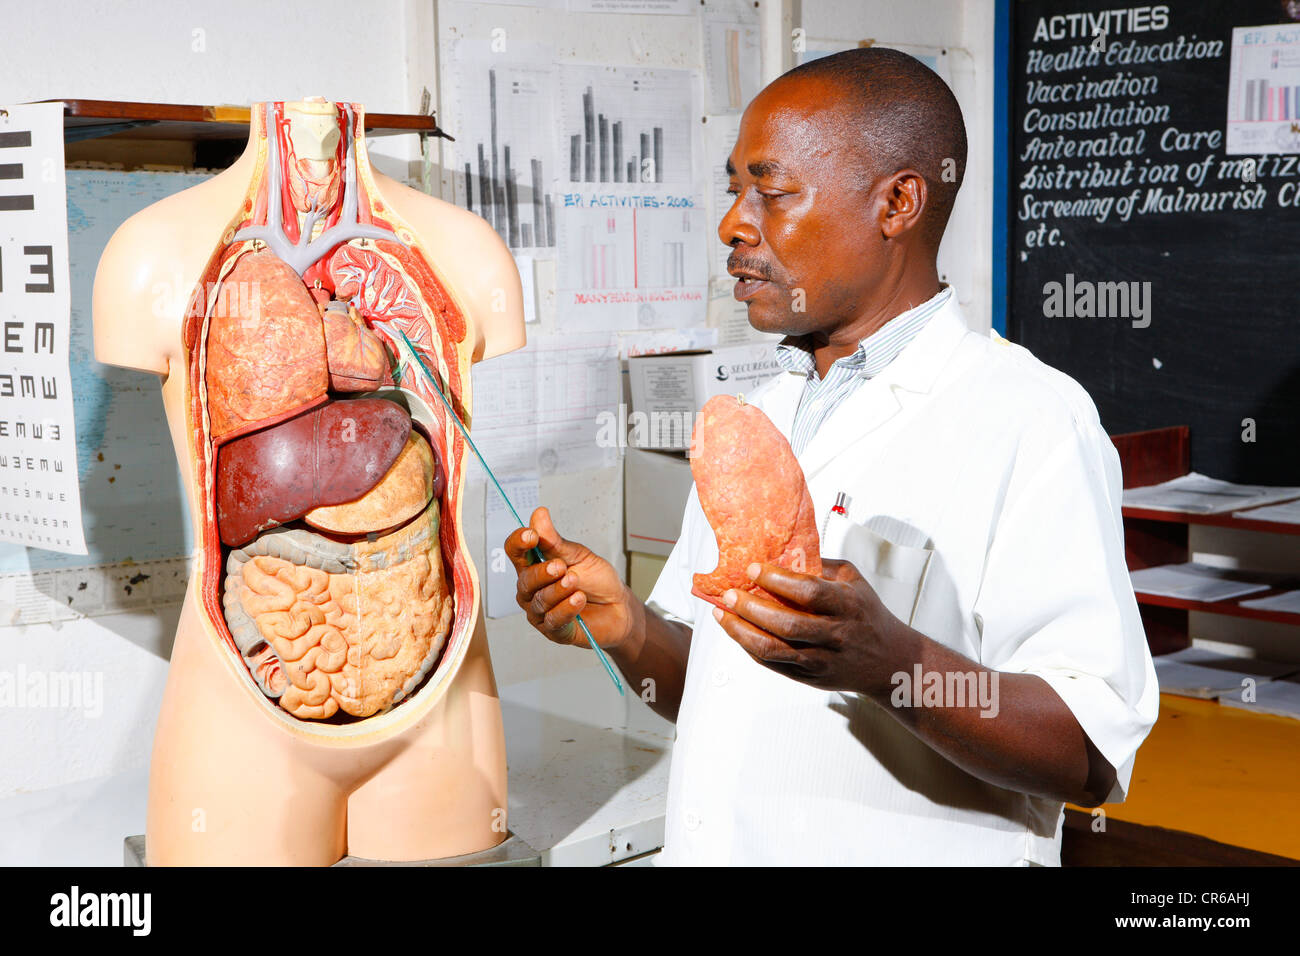 Doctor with an anatomical model, during a counseling session, hospital, Manyemen, Cameroon, Africa - Stock Image